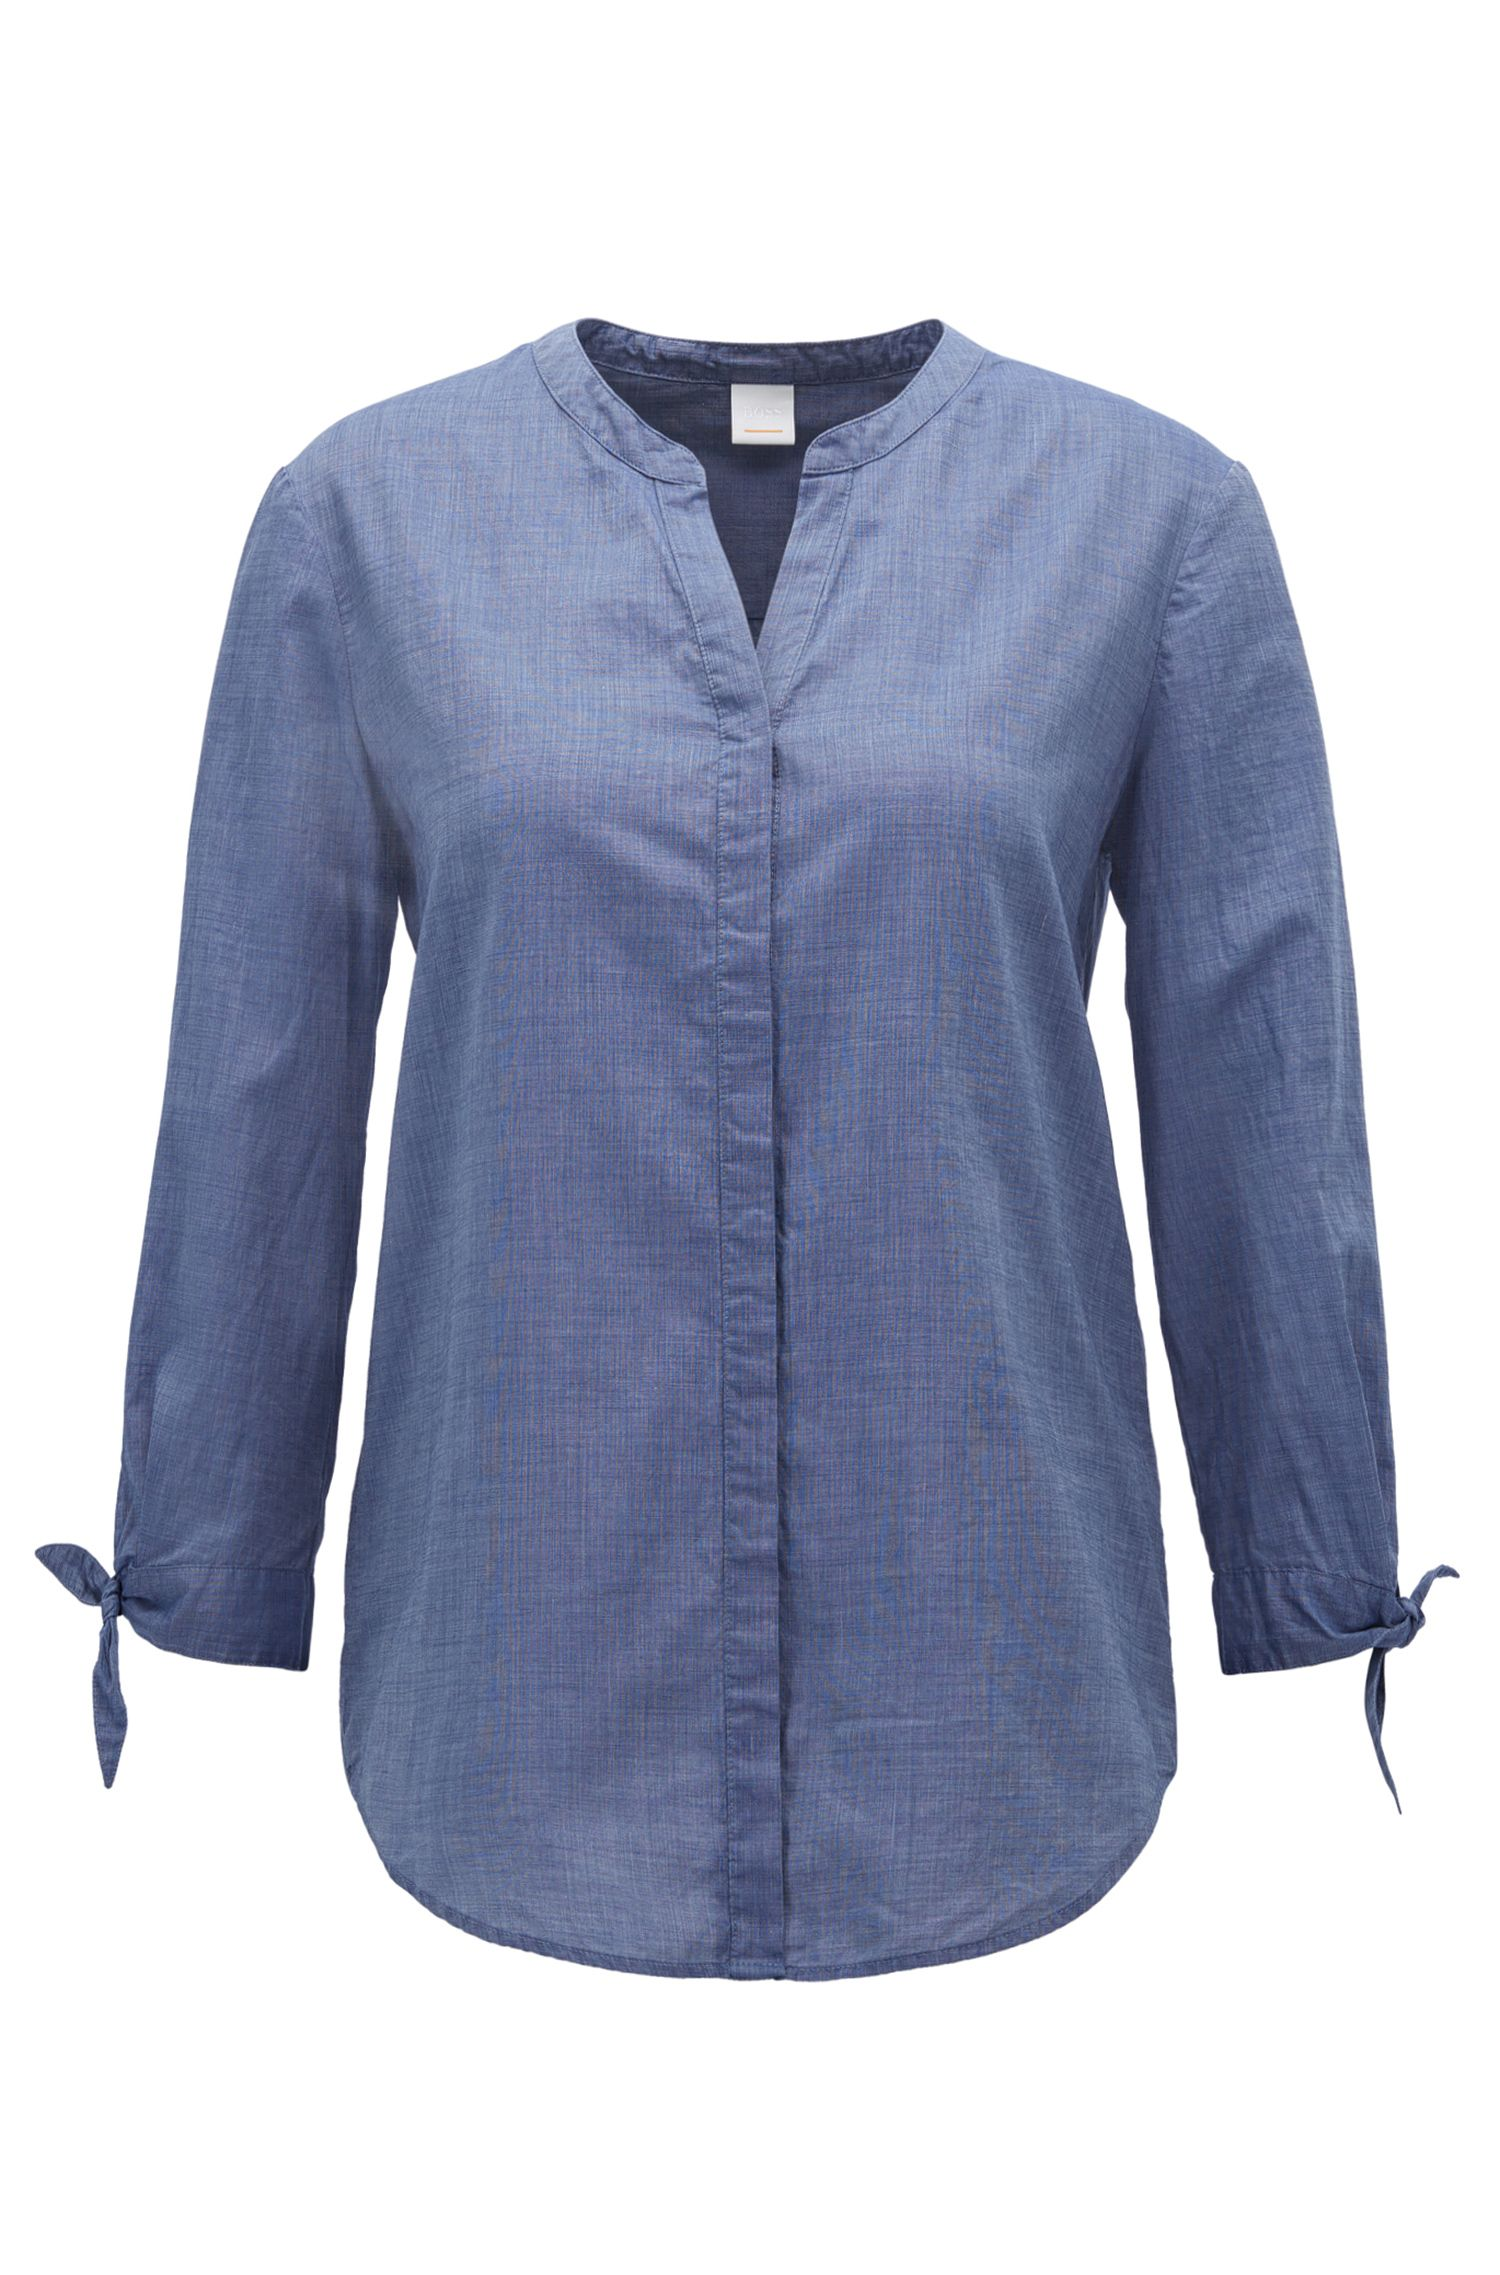 Relaxed-fit blouse in a cotton-blend chambray